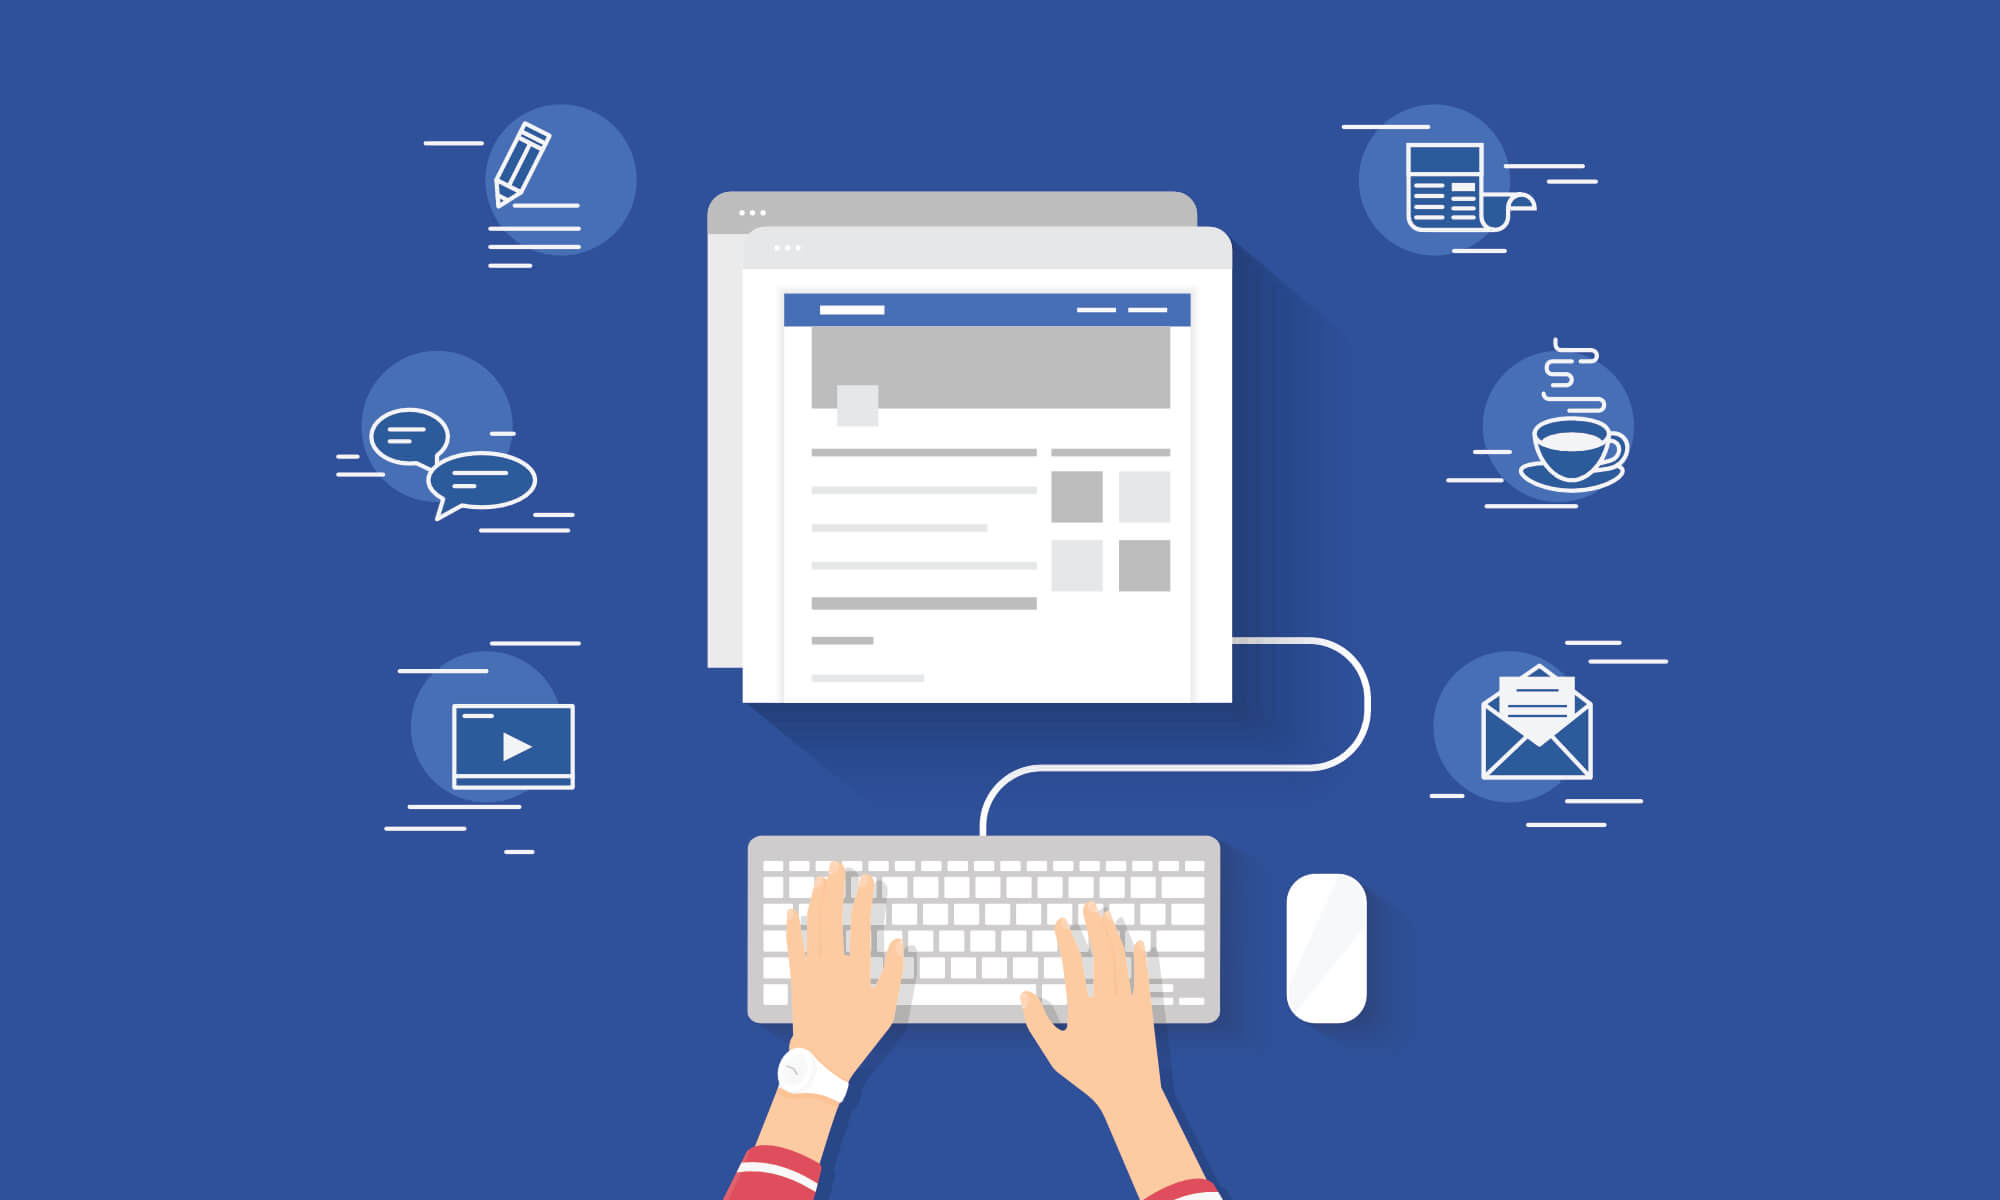 How to use Facebook Groups, Live and Events